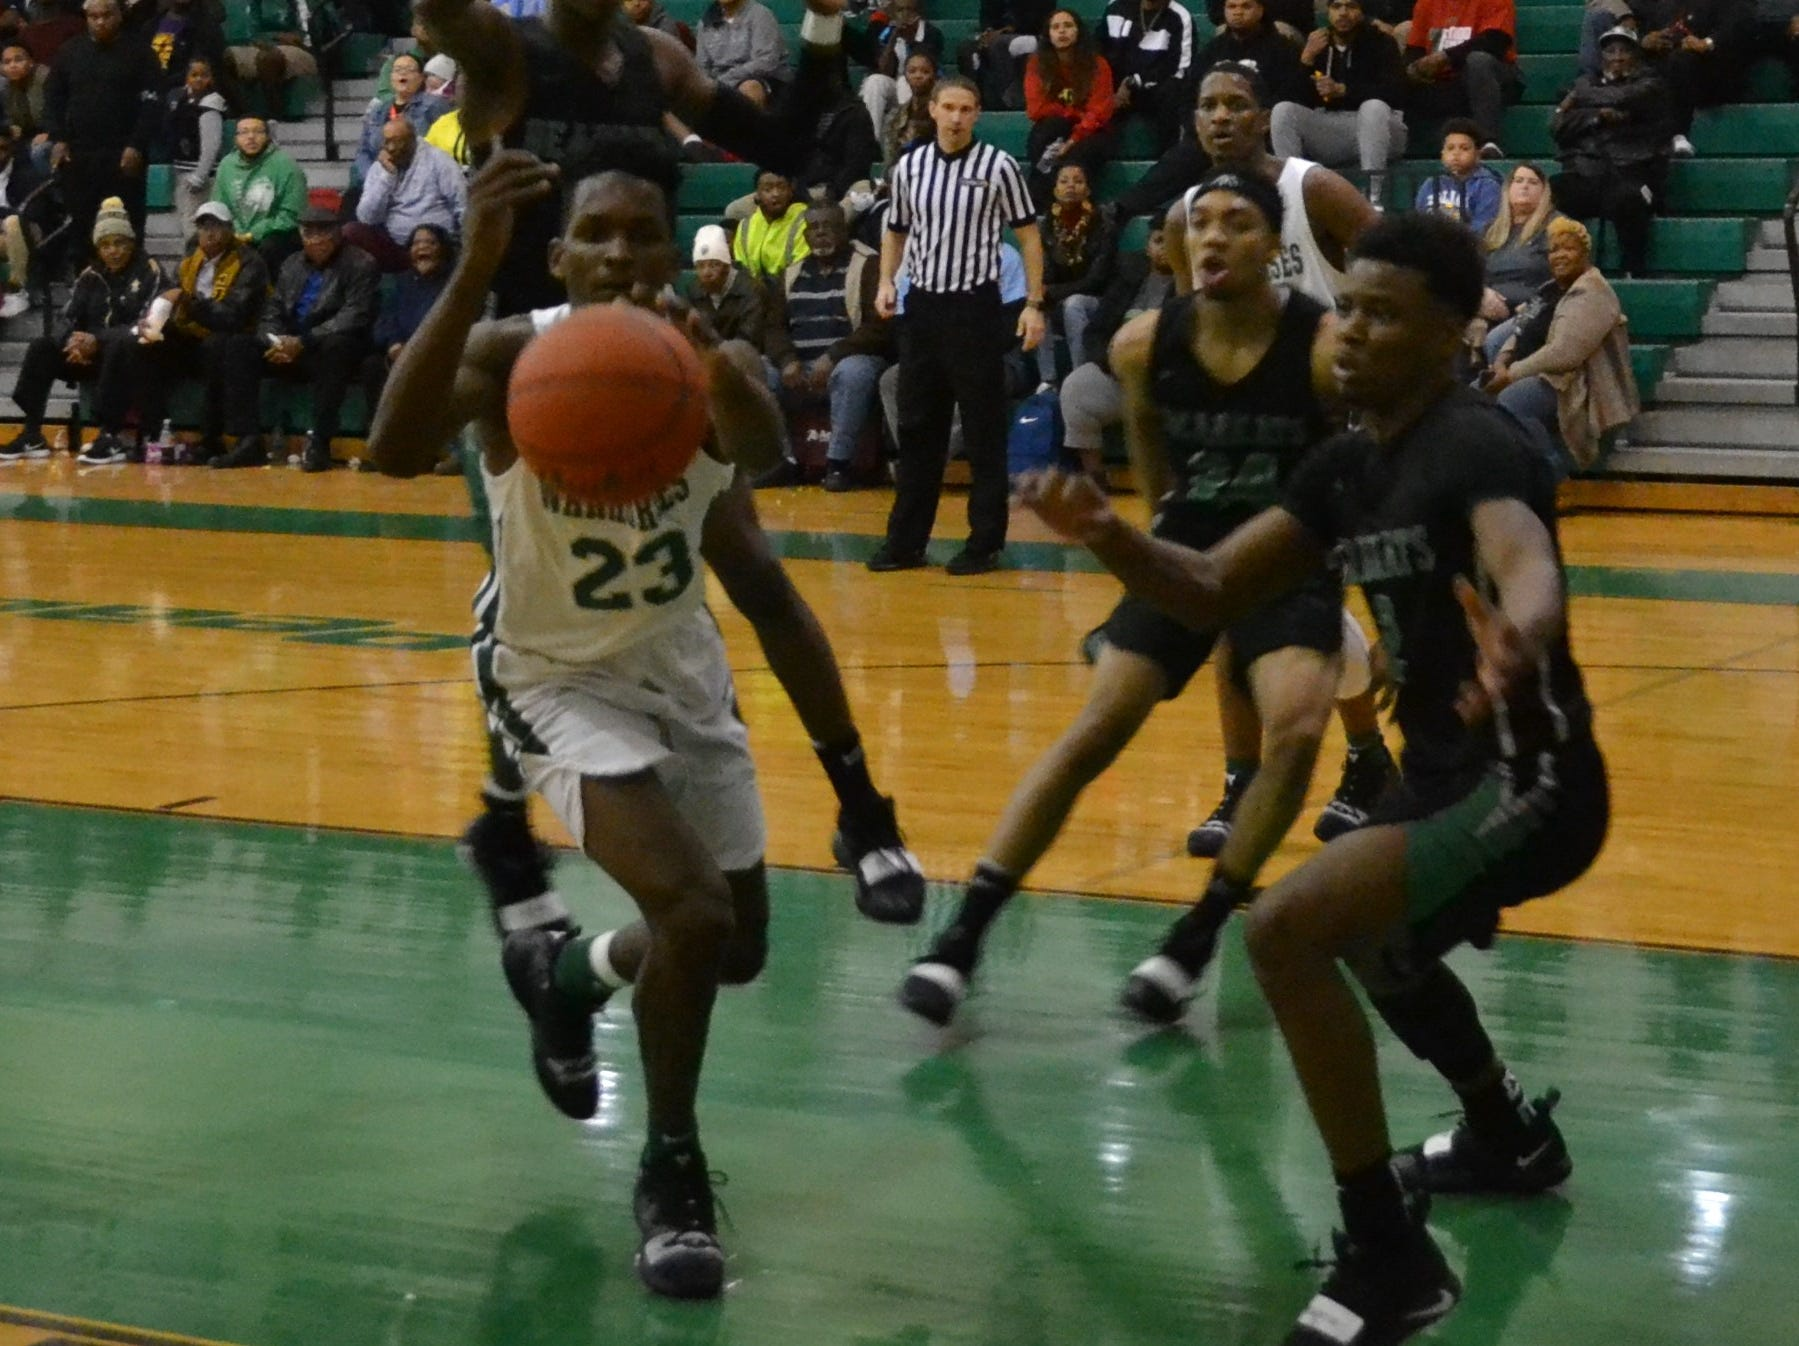 Peabody's Darius Smith (23) tracks down a loose ball. The Peabody boys basketball team played the Bossier Bearkats Tuesday night at the Emerald Palace. Peabody got the win 72-67.